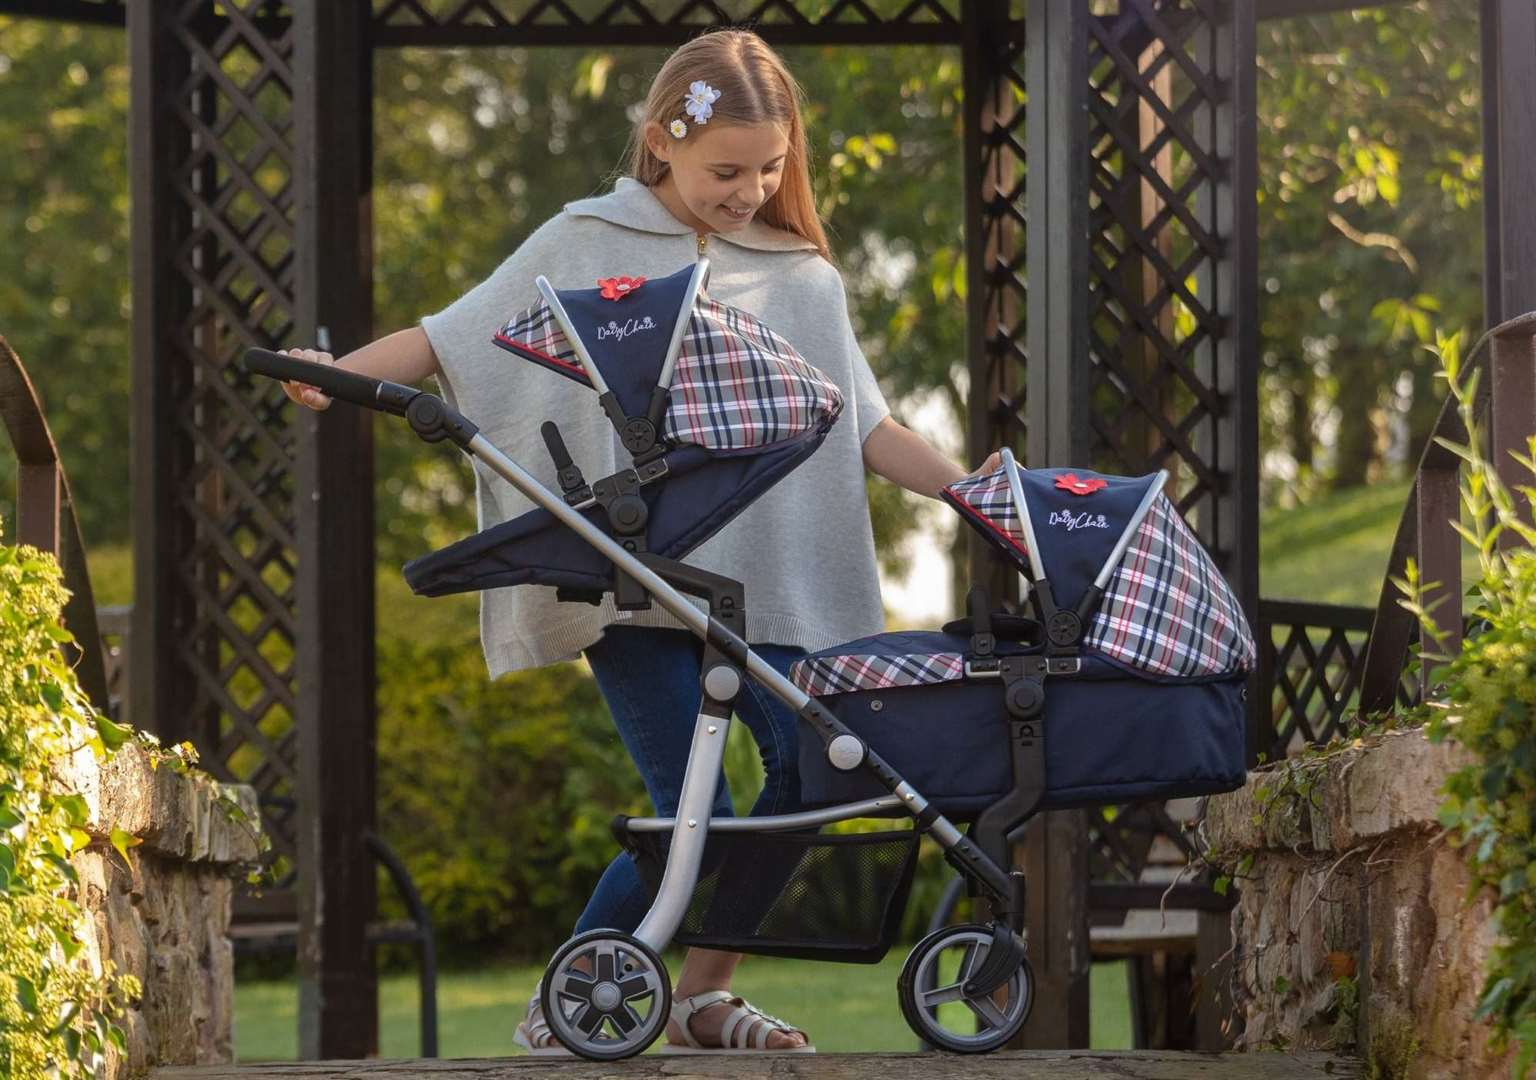 Andrew Coplestone, founder of premium doll stroller supplier Play Like Mum, says retailers, manufacturers and shoppers face a tough Christmas